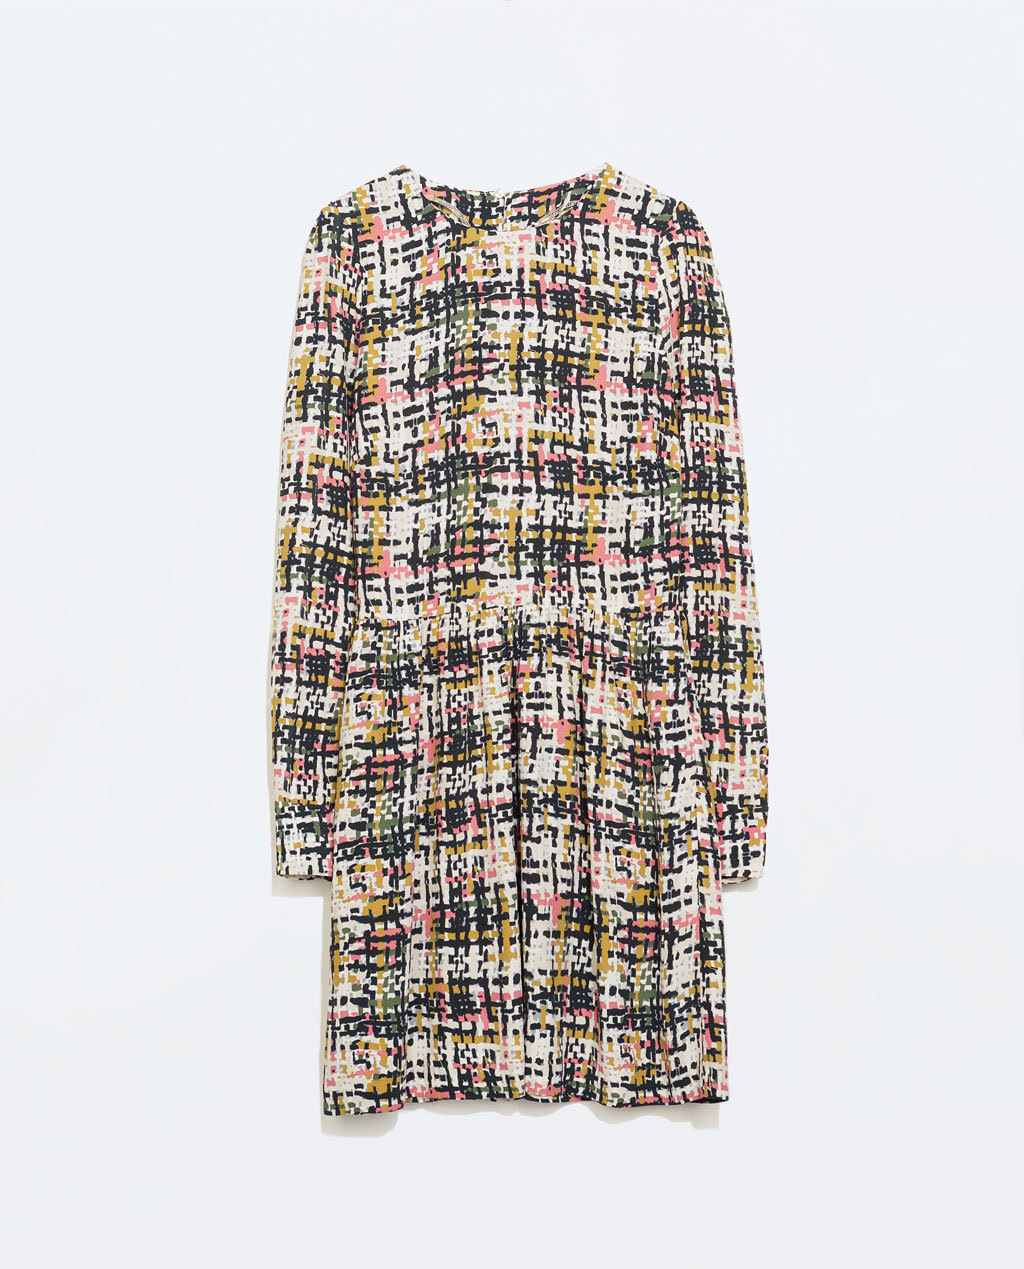 Long Sleeve Printed Dress - style: shift; length: mid thigh; fit: fitted at waist; pattern: checked/gingham; occasions: casual, evening, creative work; fibres: viscose/rayon - 100%; neckline: crew; predominant colour: multicoloured; sleeve length: long sleeve; sleeve style: standard; pattern type: fabric; pattern size: standard; texture group: other - light to midweight; trends: optic prints; season: a/w 2014; multicoloured: multicoloured